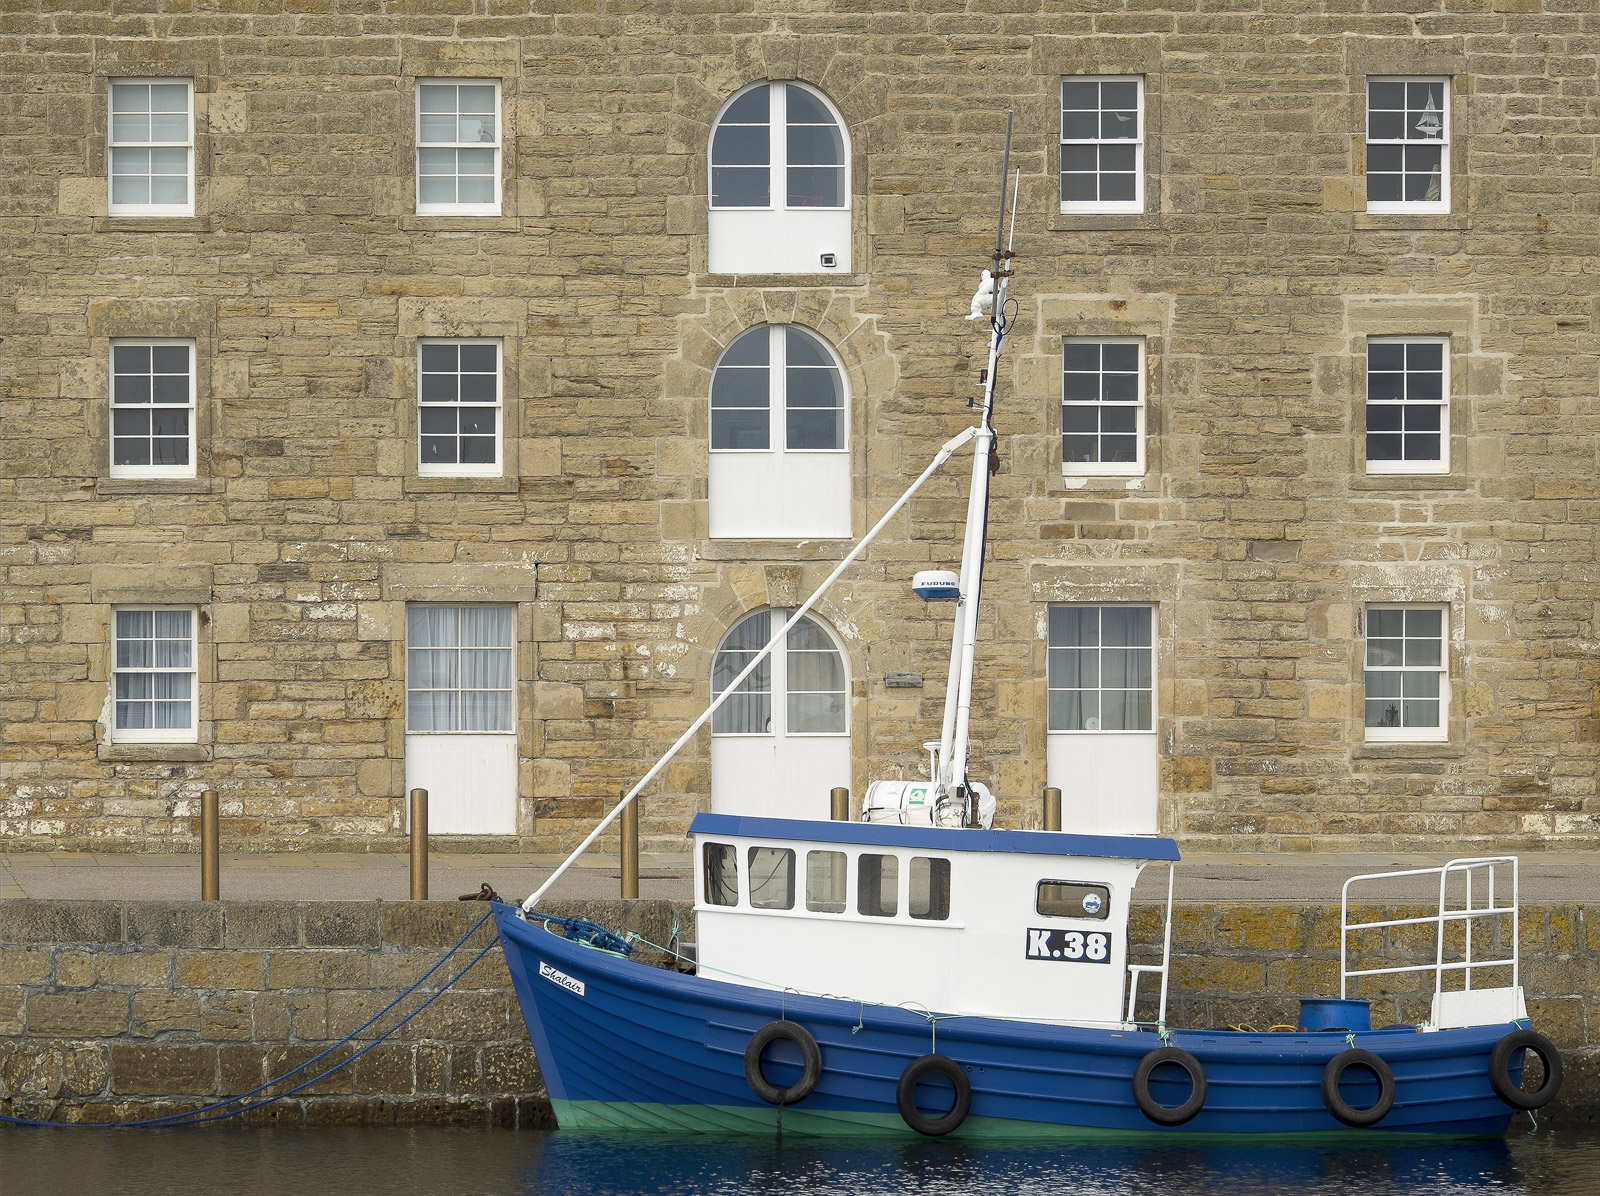 The old Mews building in Burghead has recently been renovated and it looks significantly cleaner and fresher these days.&nbsp...